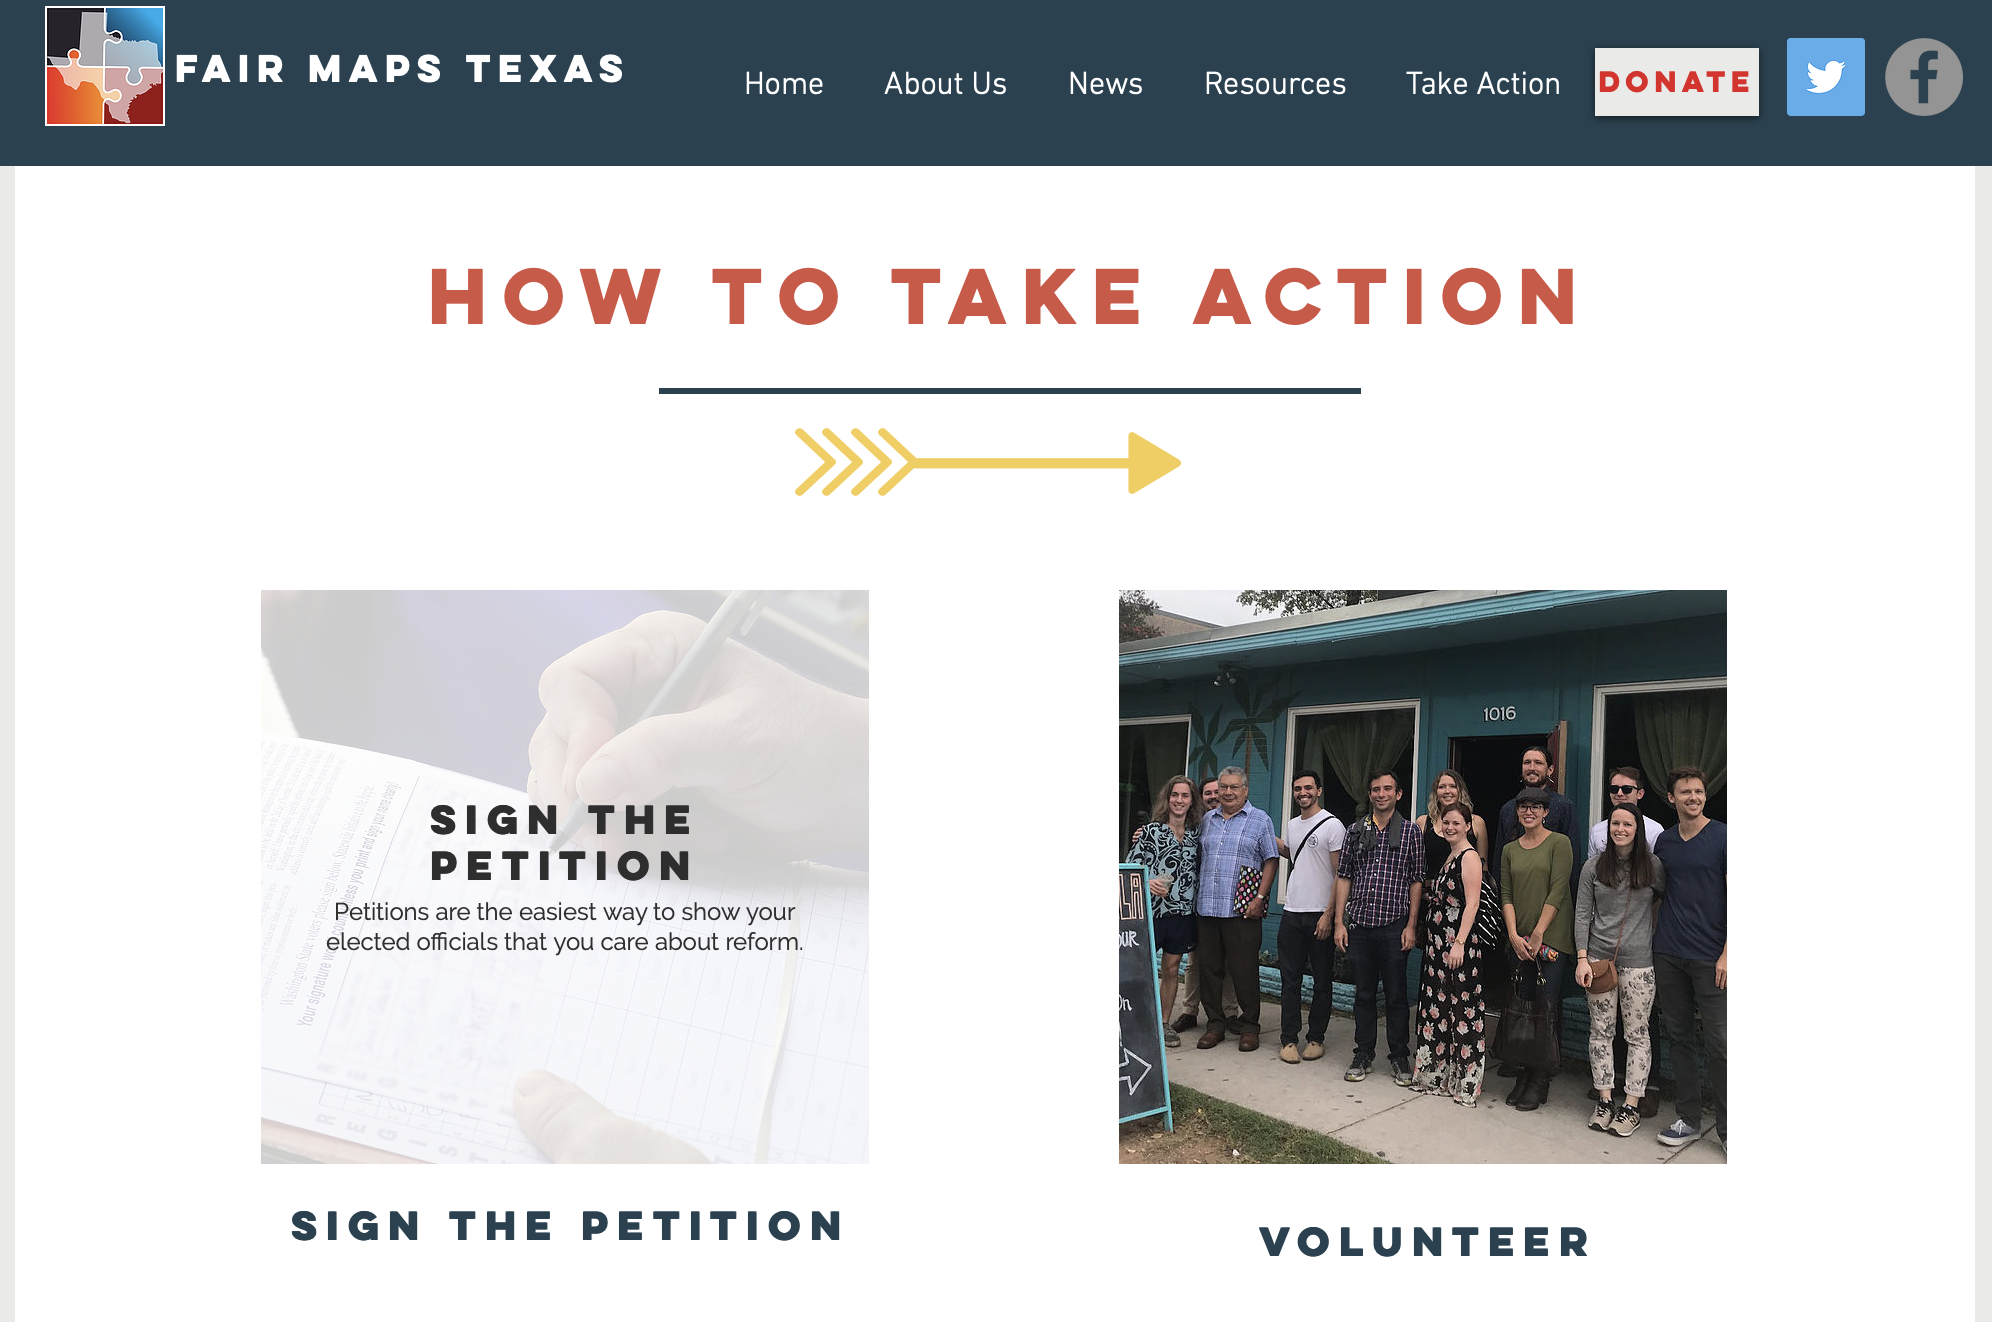 Take Action Page for Fair Maps Texas